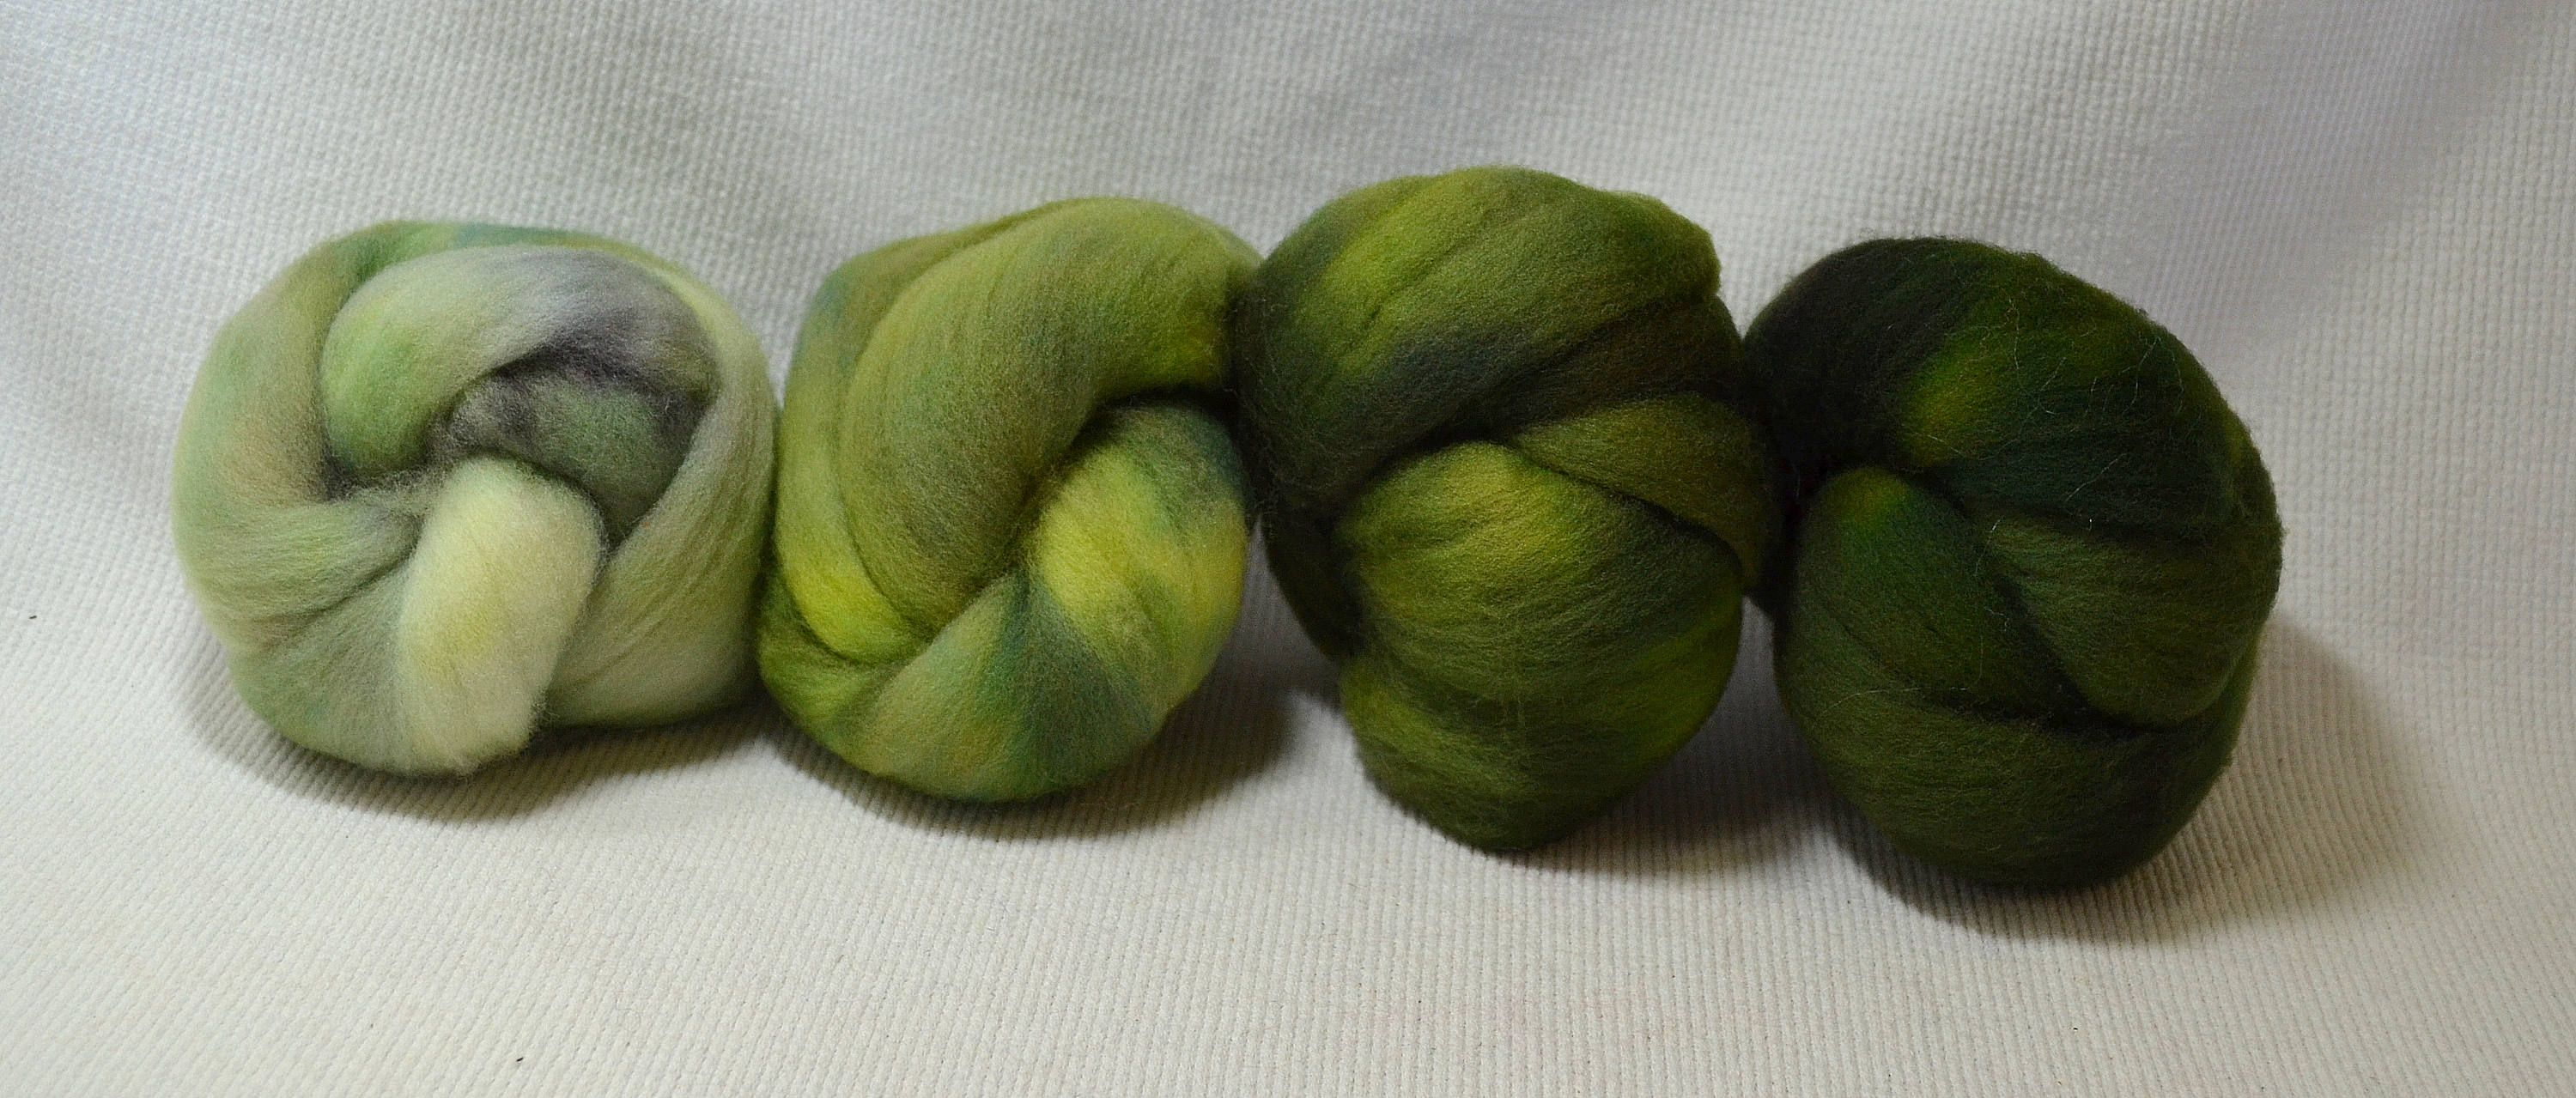 NEW Hand Dyed Gradient Fiber Set - American Targhee Combed Top in Mossy Semi Solid 2 ounces - Play With Your Fiber! by yarnhollow on Etsy